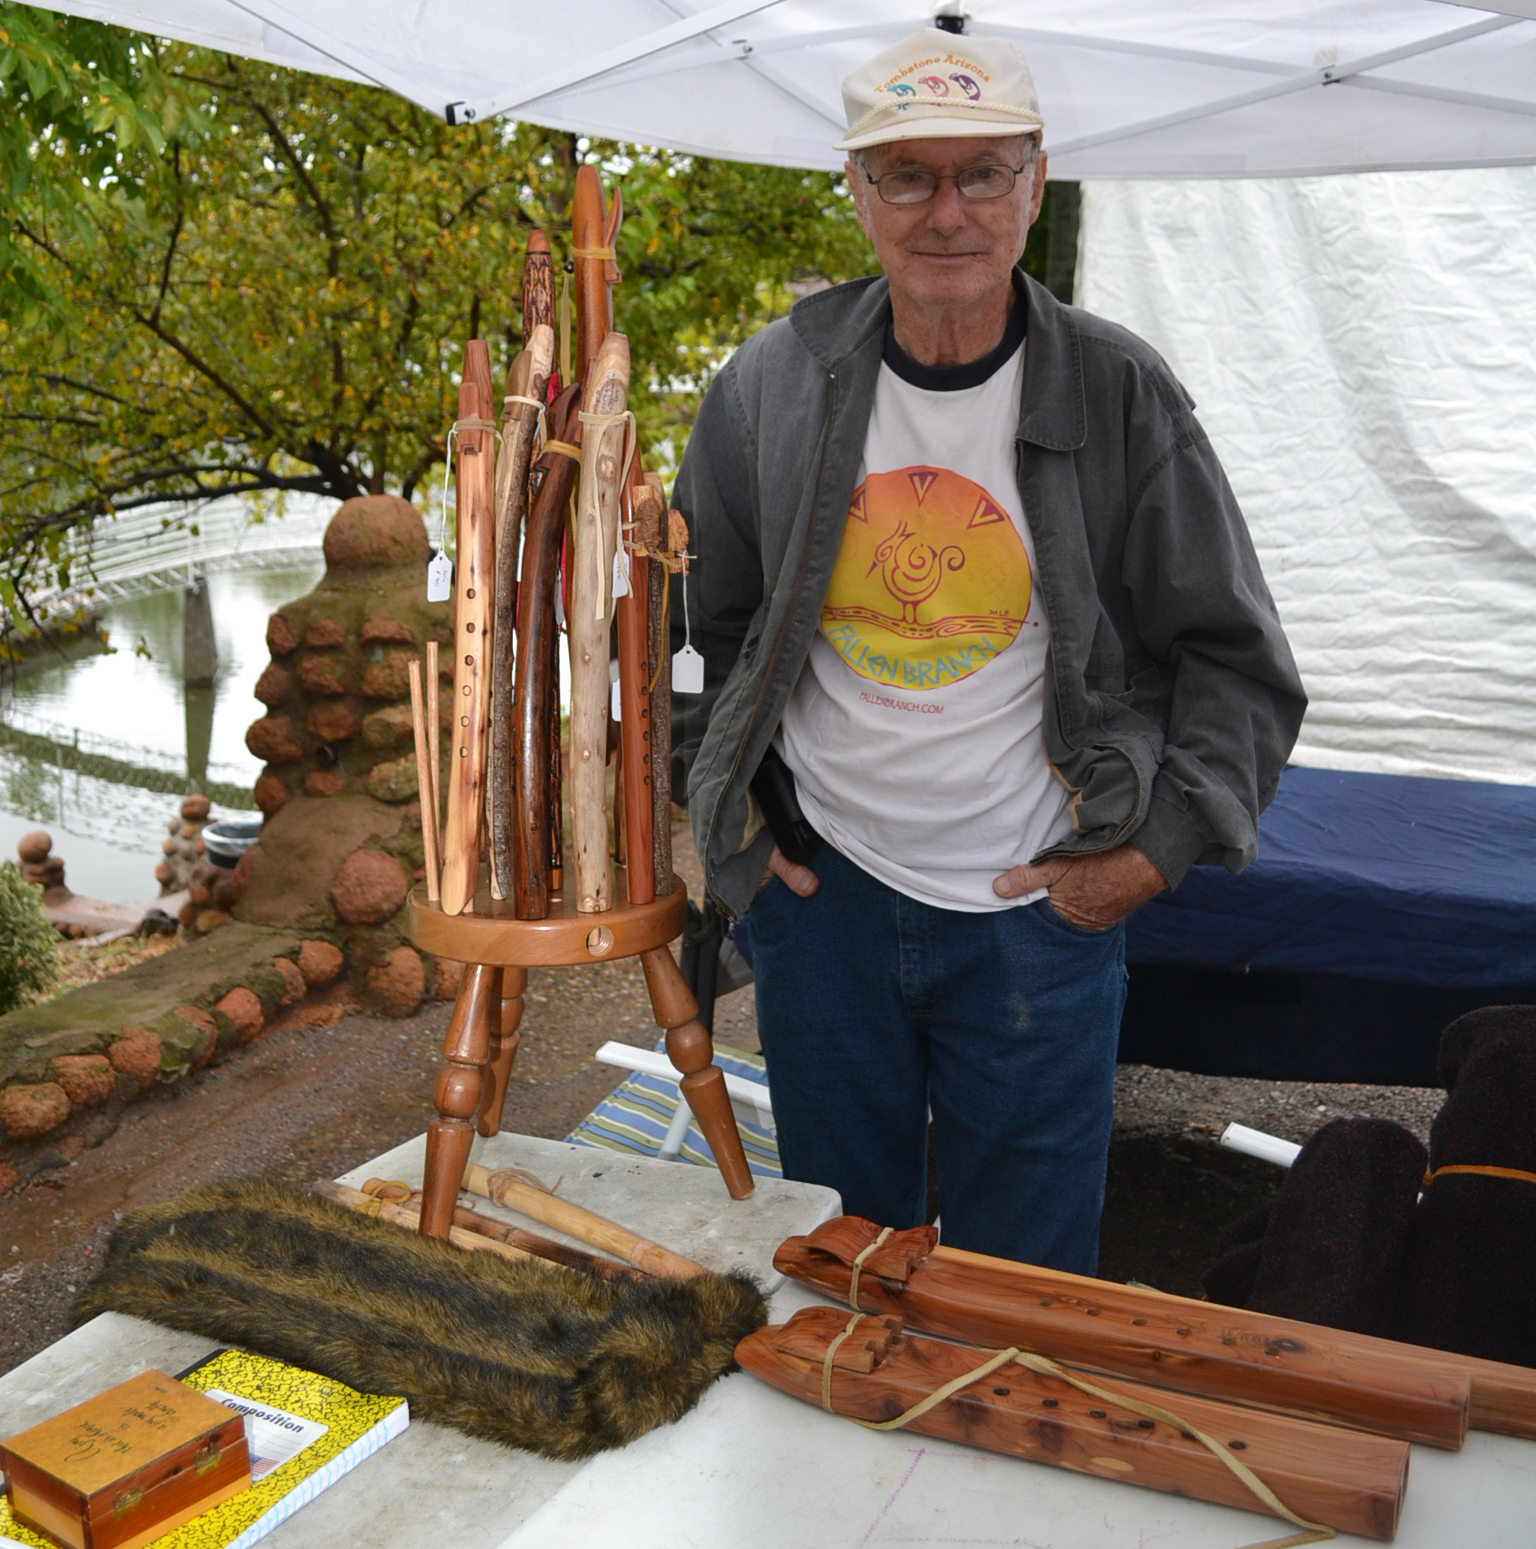 John Suttles showcases a variety of flutes, some of which he made, with Medicine Creek as a backdrop. Creeping Bear and Suttles were two of the many artists on display during the sixth annual Medicine Park Art Walk and Flute Festival on Sept. 19 and 20 in Medicine Park.